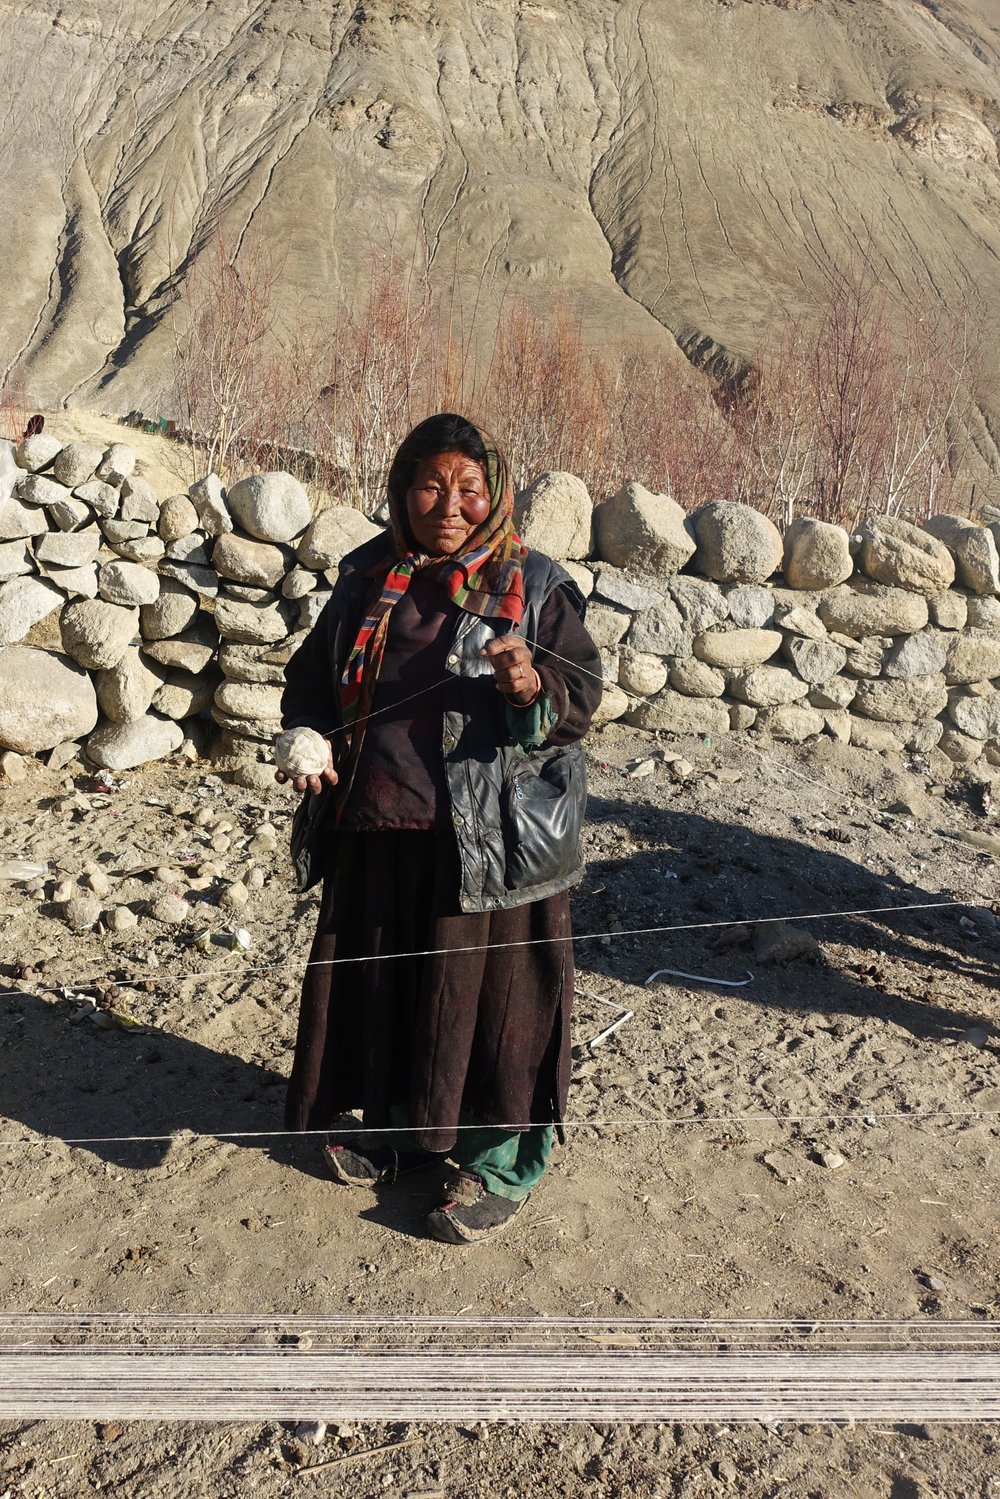 Ladakhi woman in traditional clothing